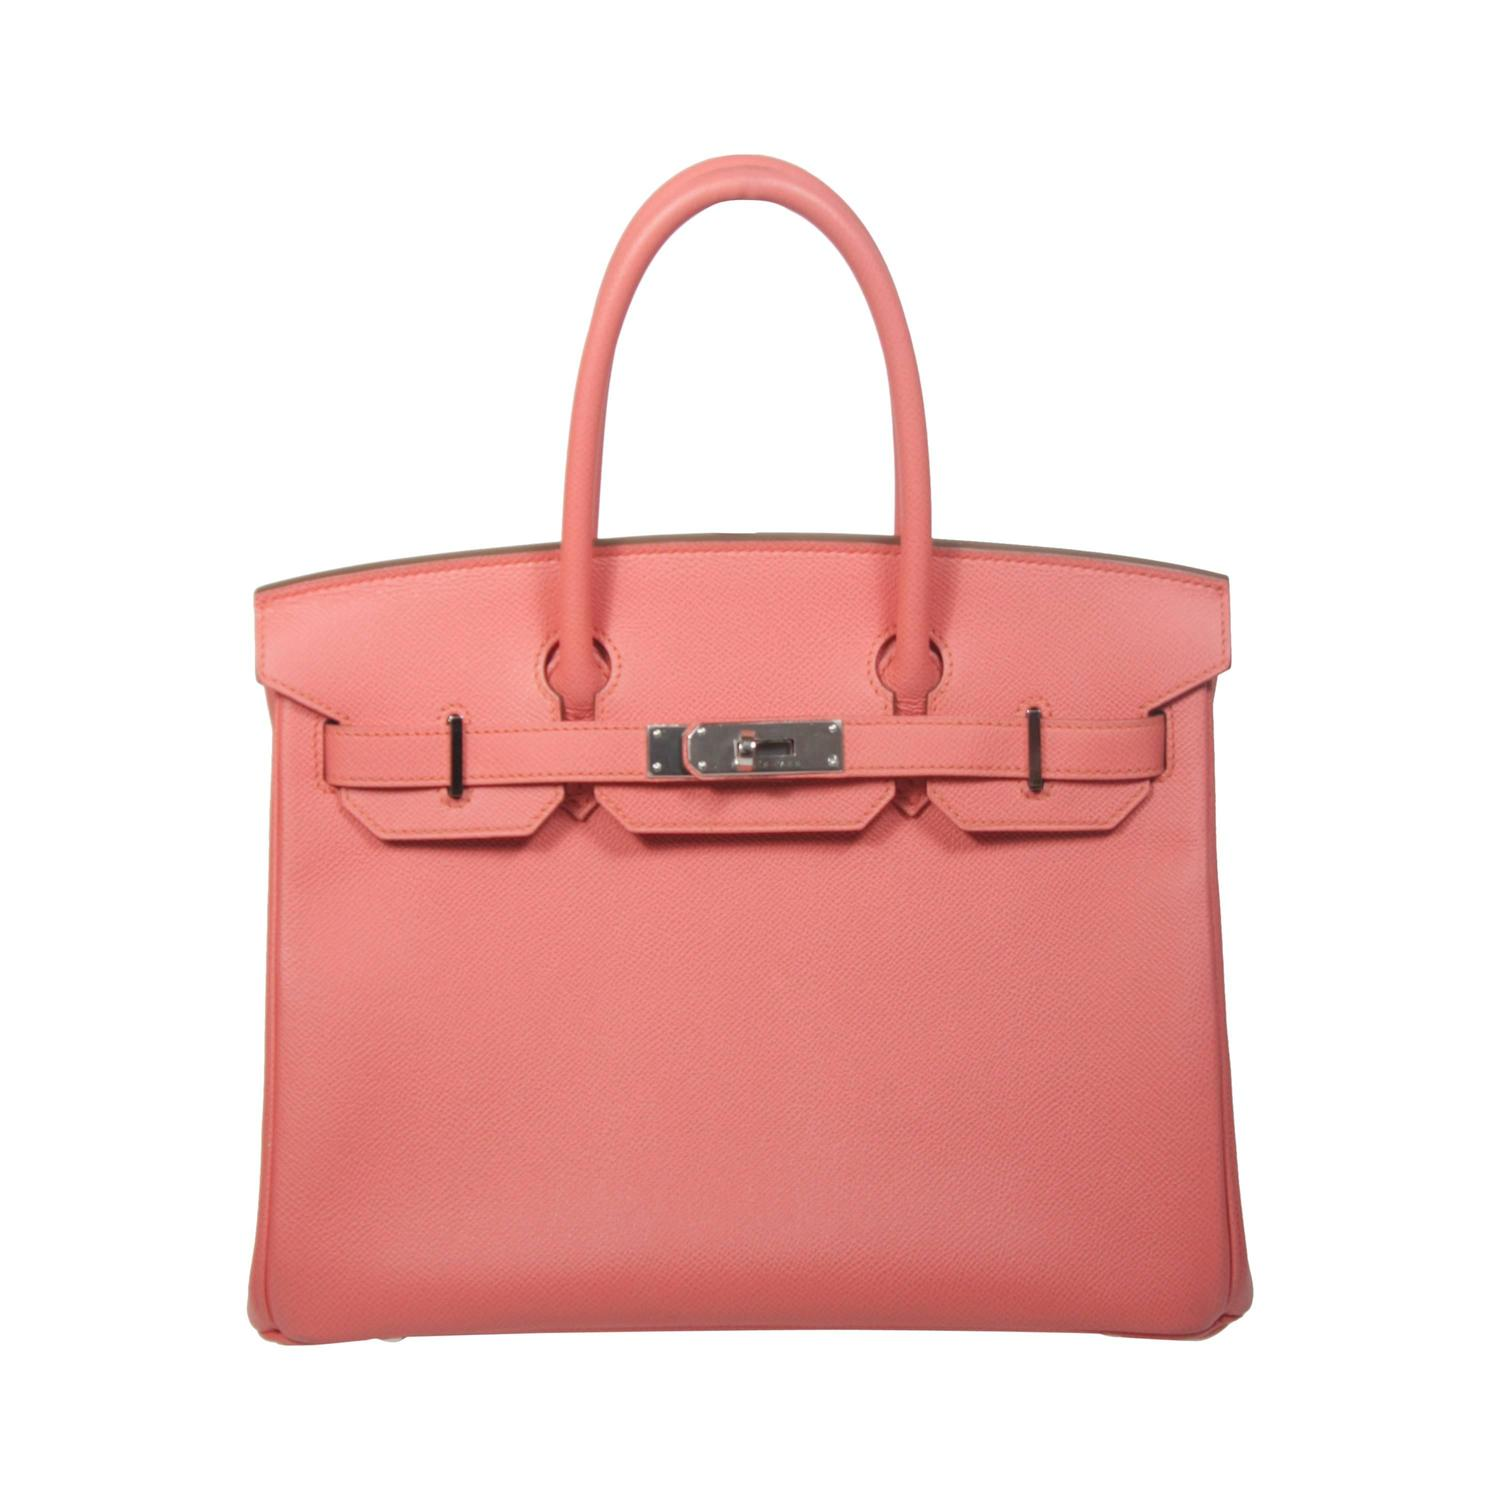 outlet bags usa fake - HERMES Birkin 30 Bag Rose Jaipur Pink Clemence Palladium For Sale ...